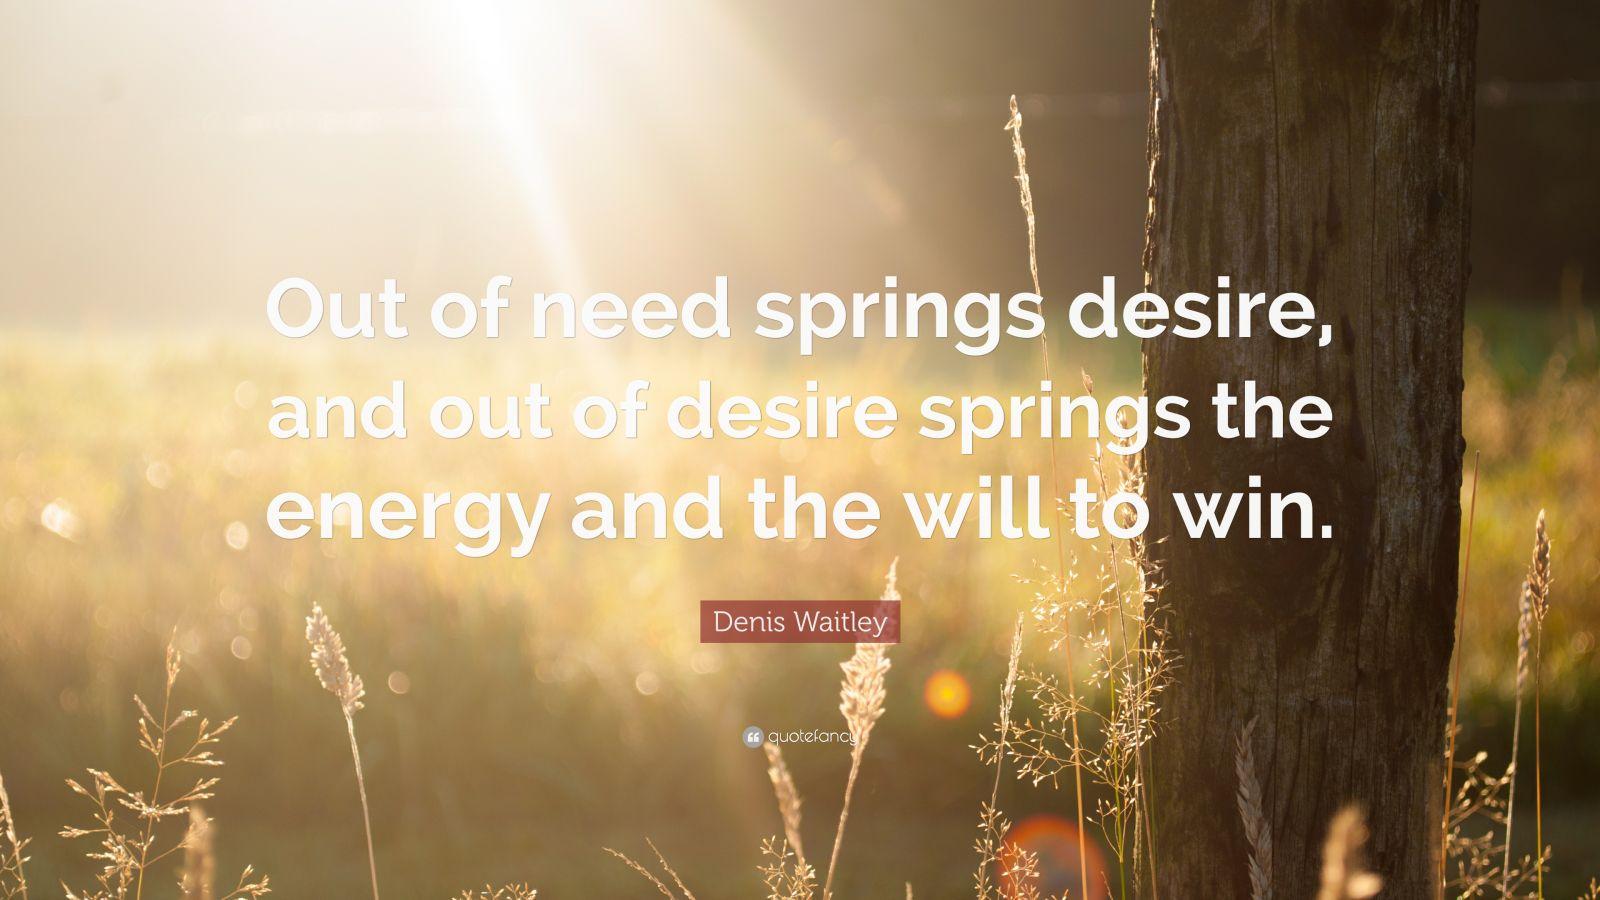 """Denis Waitley Quote: """"Out of need springs desire, and out of desire springs the energy and the will to win."""""""